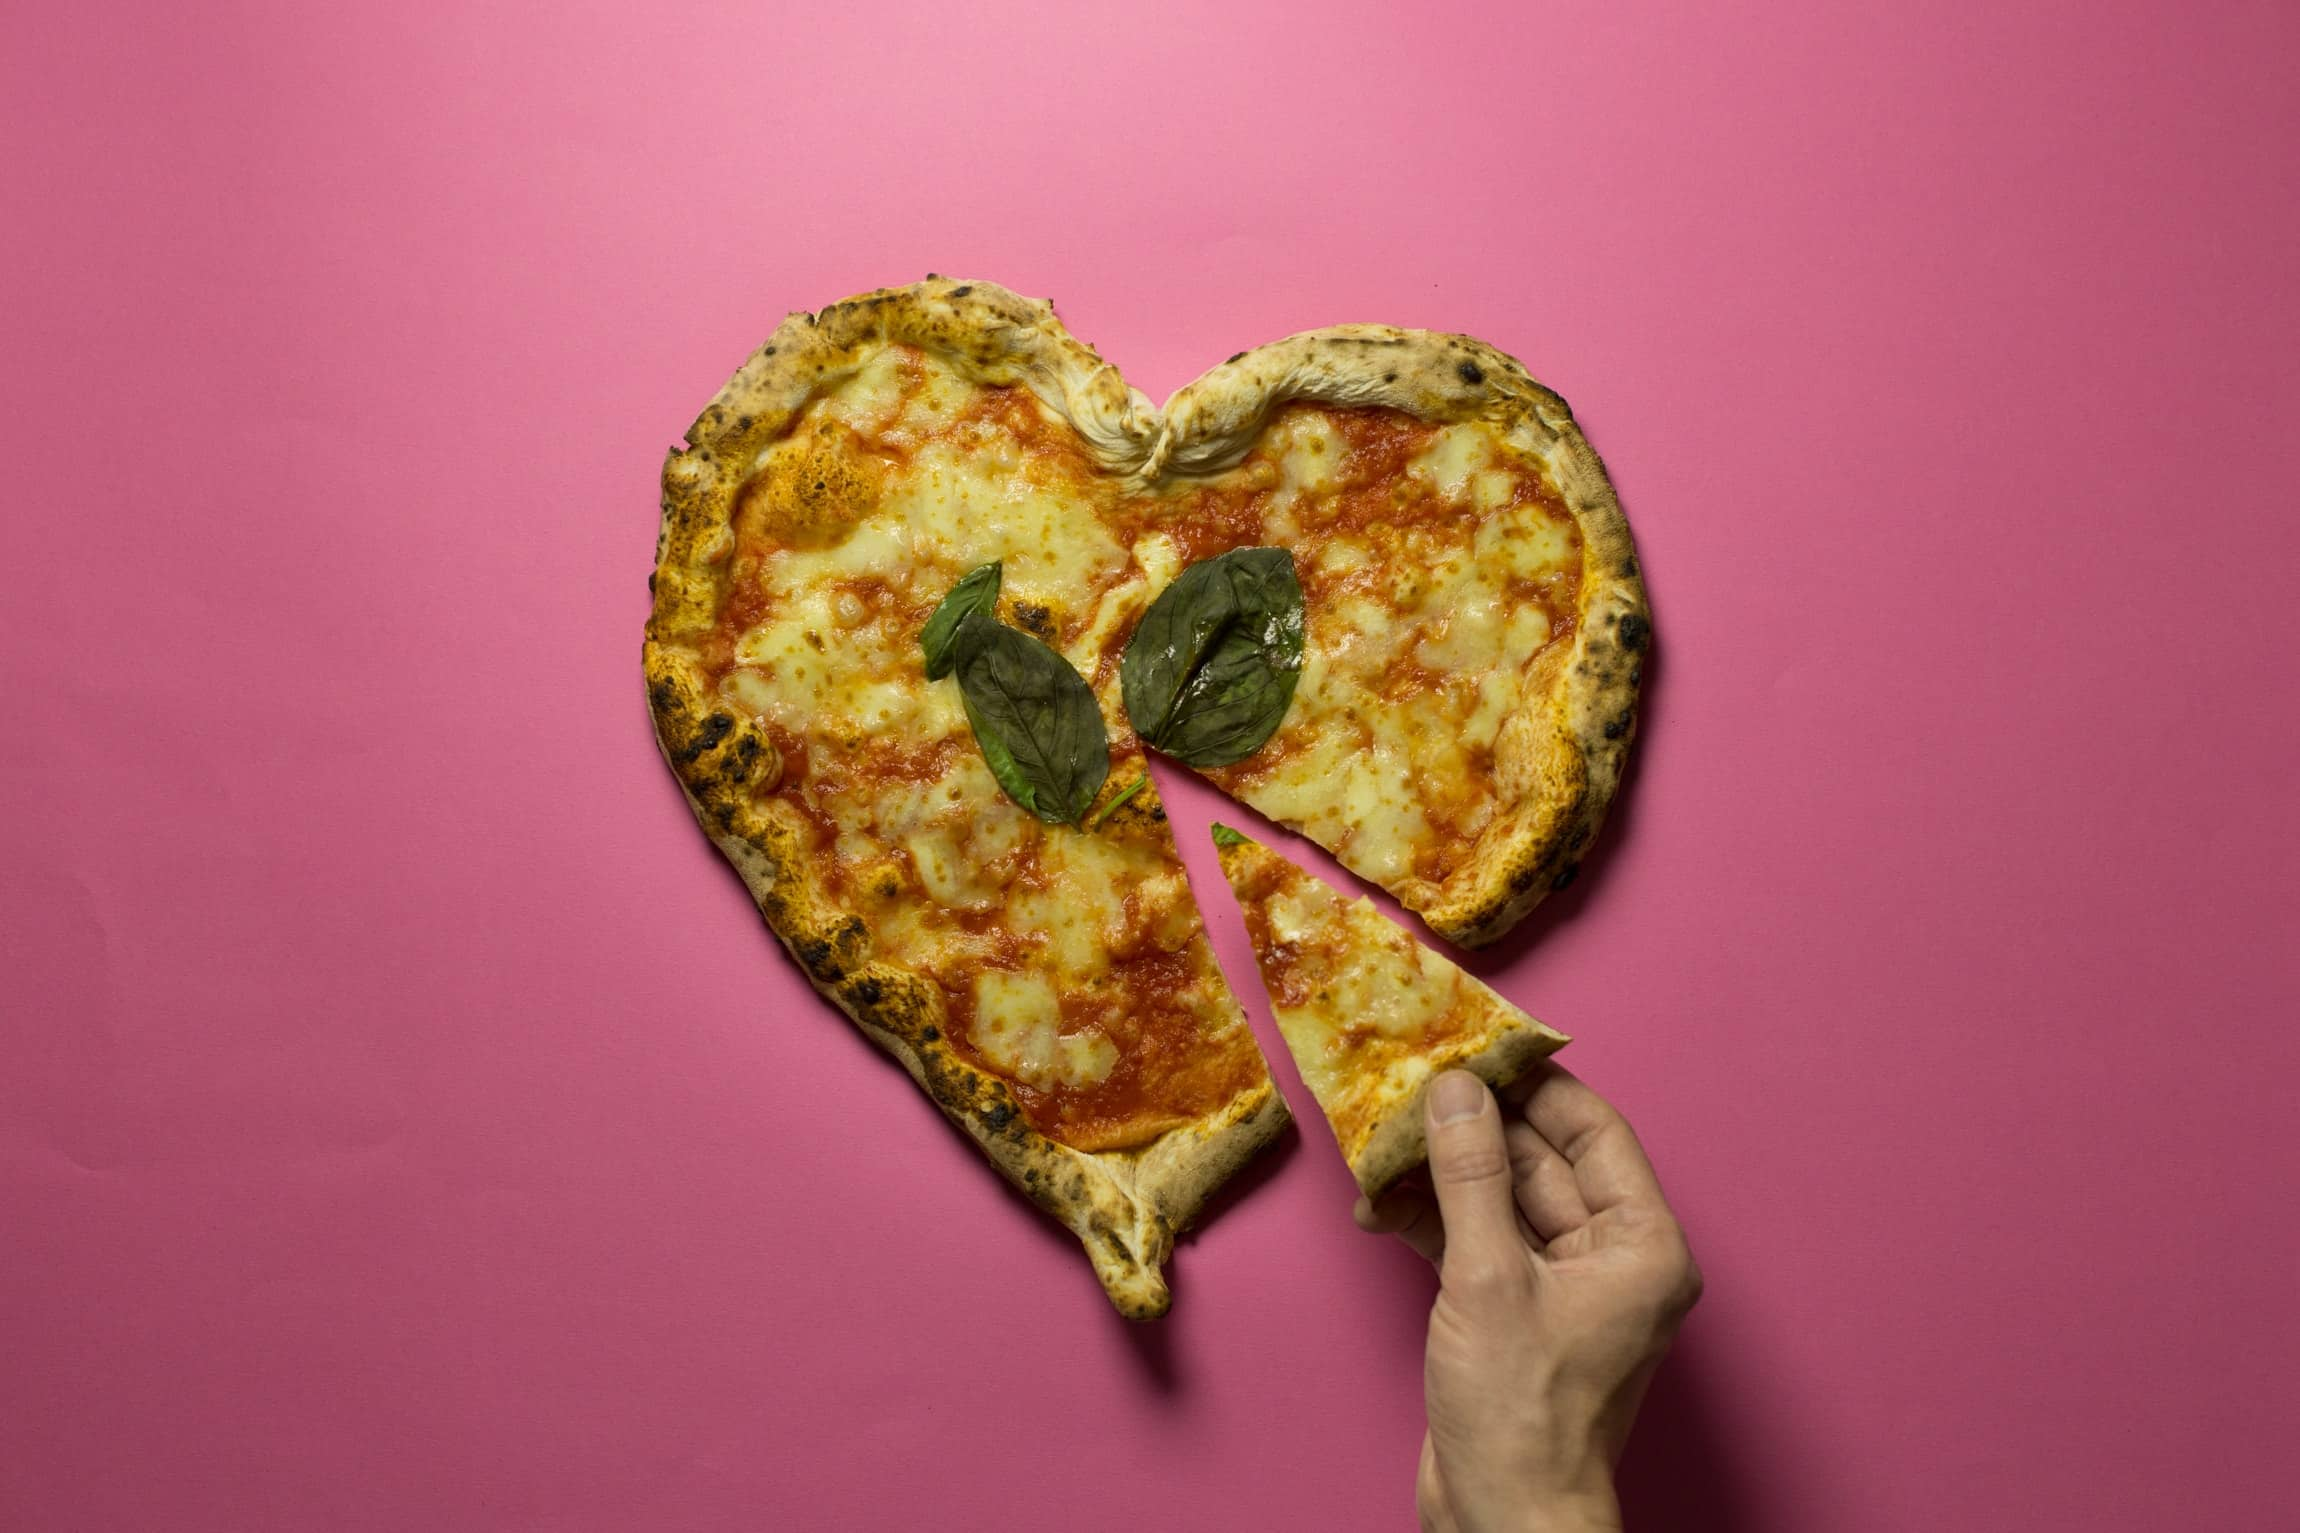 Pizza heart slice out